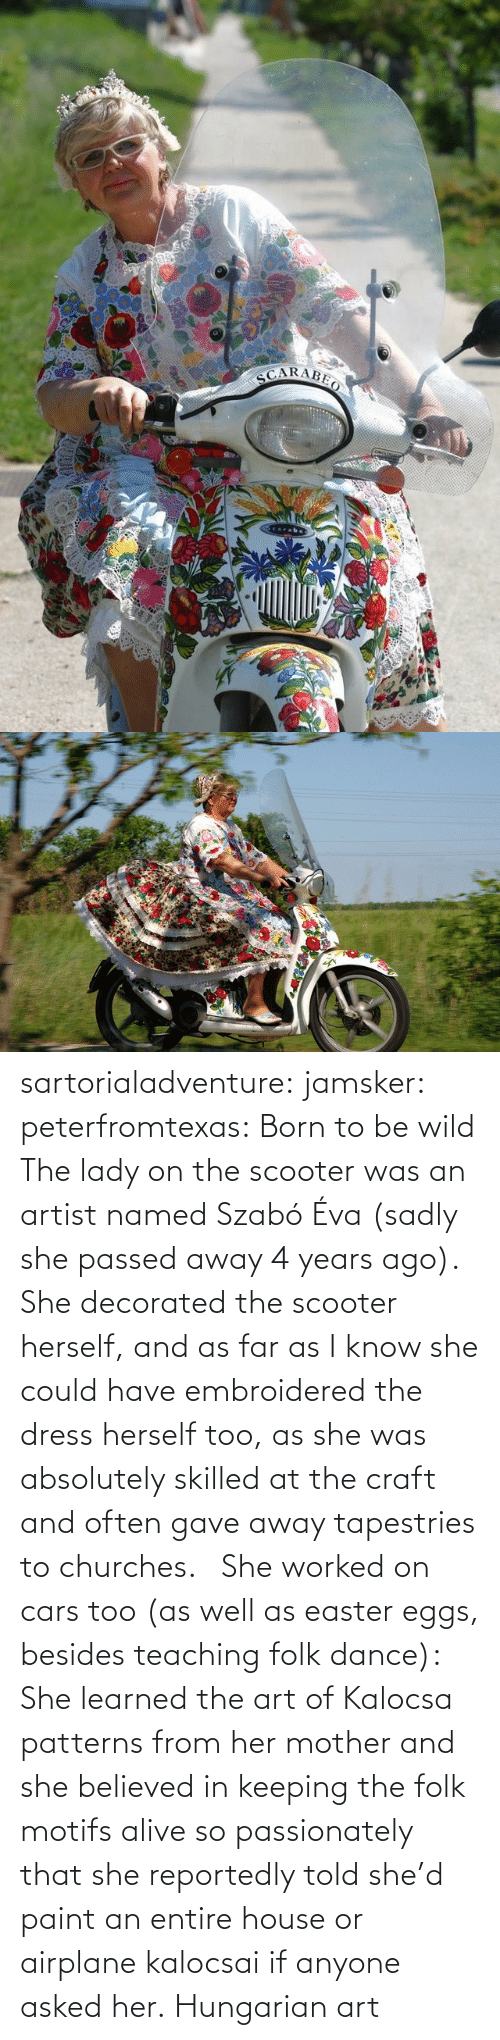 Img Src: sartorialadventure: jamsker:  peterfromtexas: Born to be wild The lady on the scooter was an artist named Szabó Éva (sadly she passed away 4 years ago). She decorated the scooter herself, and as far as I know she could have embroidered the dress herself too, as she was absolutely skilled at the craft and often gave away tapestries to churches.   She worked on cars too (as well as easter eggs, besides teaching folk dance): She learned the art of Kalocsa patterns from her mother and she believed in keeping the folk motifs alive so passionately that she reportedly told she'd paint an entire house or airplane kalocsai if anyone asked her.  Hungarian art